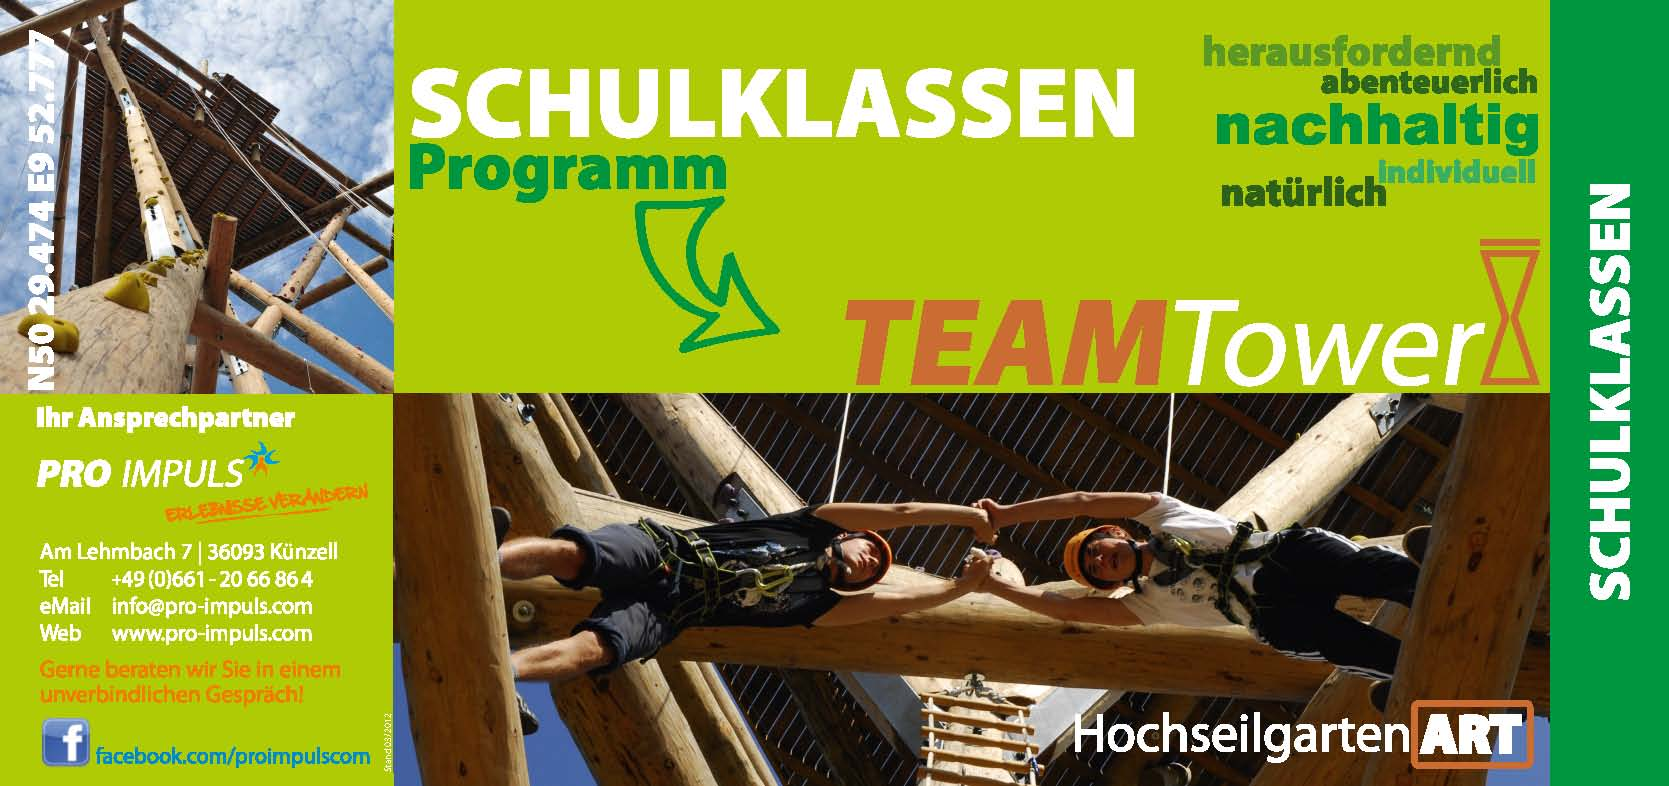 files/download/Schulklassenprogramm TeamTower.jpg